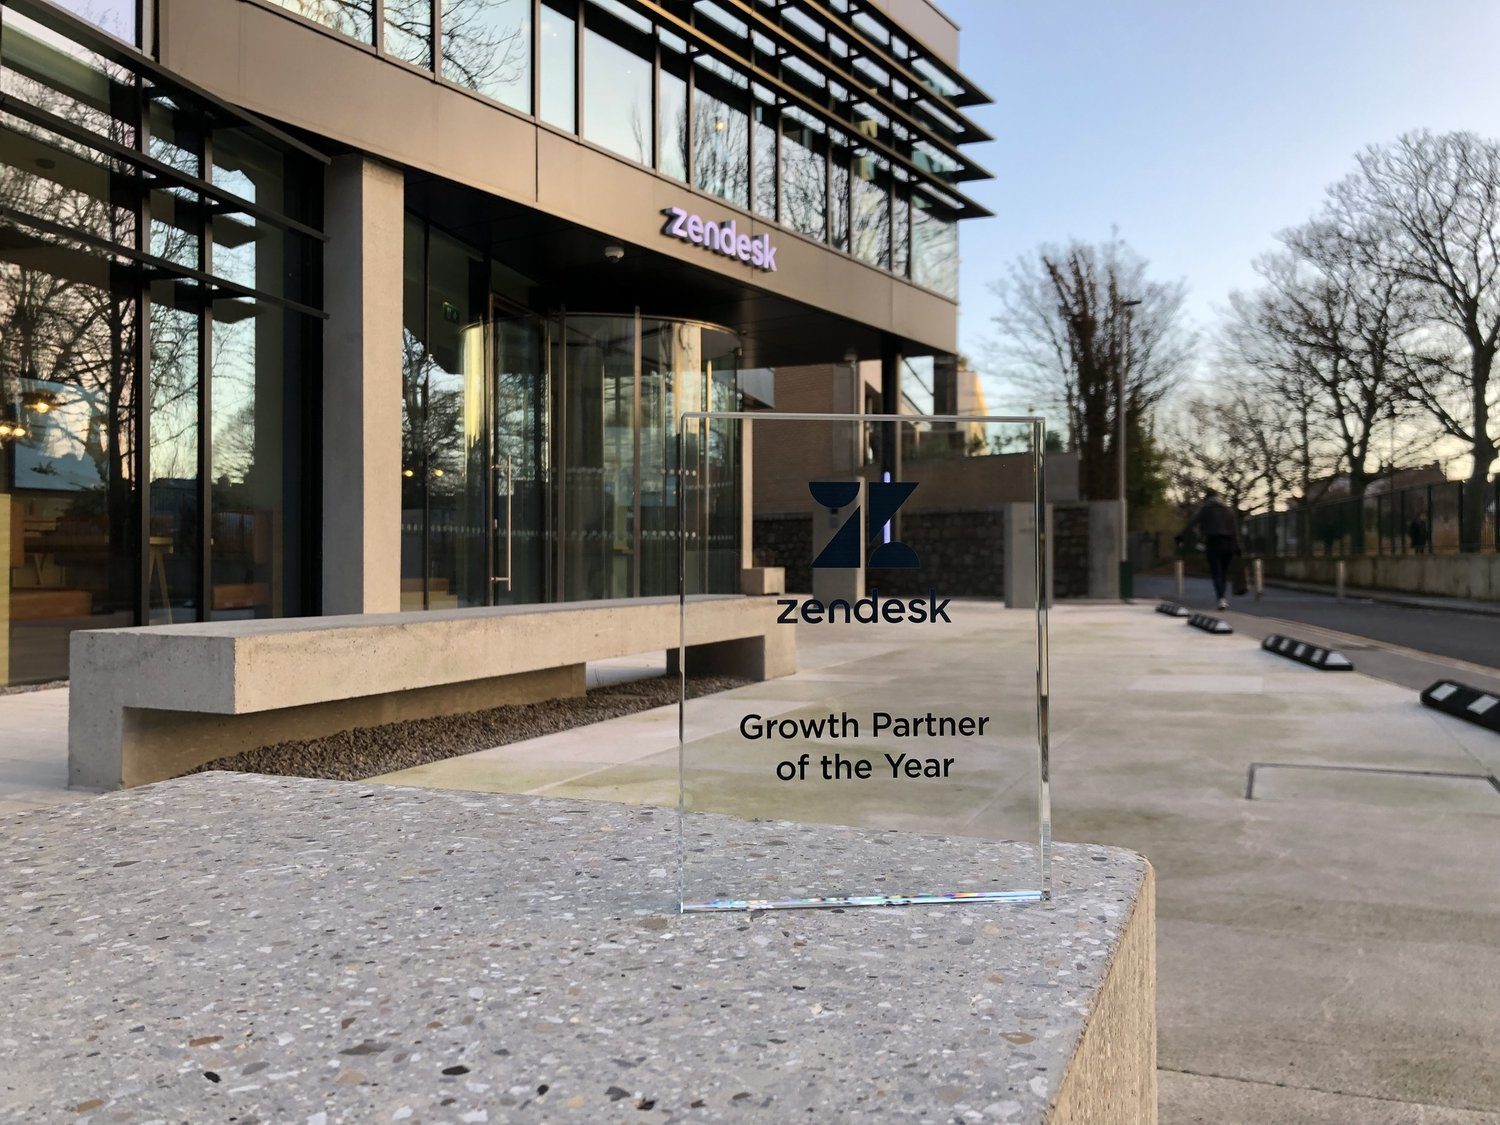 """Dec 2018 - Premium Plus awarded in Dublin with the """"Growth Partner of the year"""" award in recognition of the way our company has expanded its position in the Zendesk Partner landscape."""